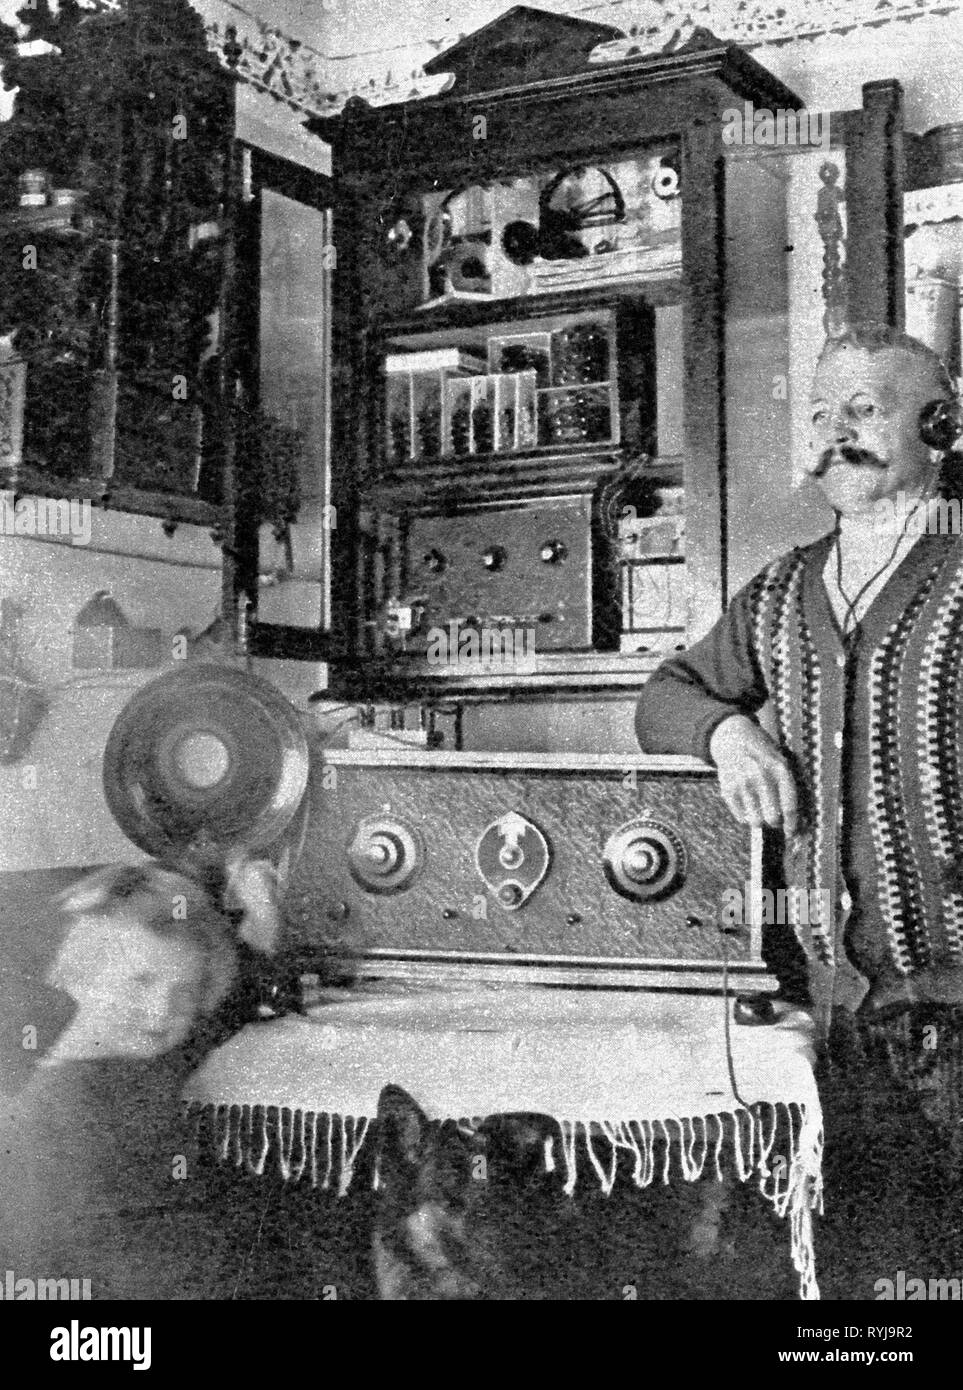 Rundfunk, Radio, Radios, self-made Radio set, Deutschland, 1929, Additional-Rights - Clearance-Info - Not-Available Stockfoto